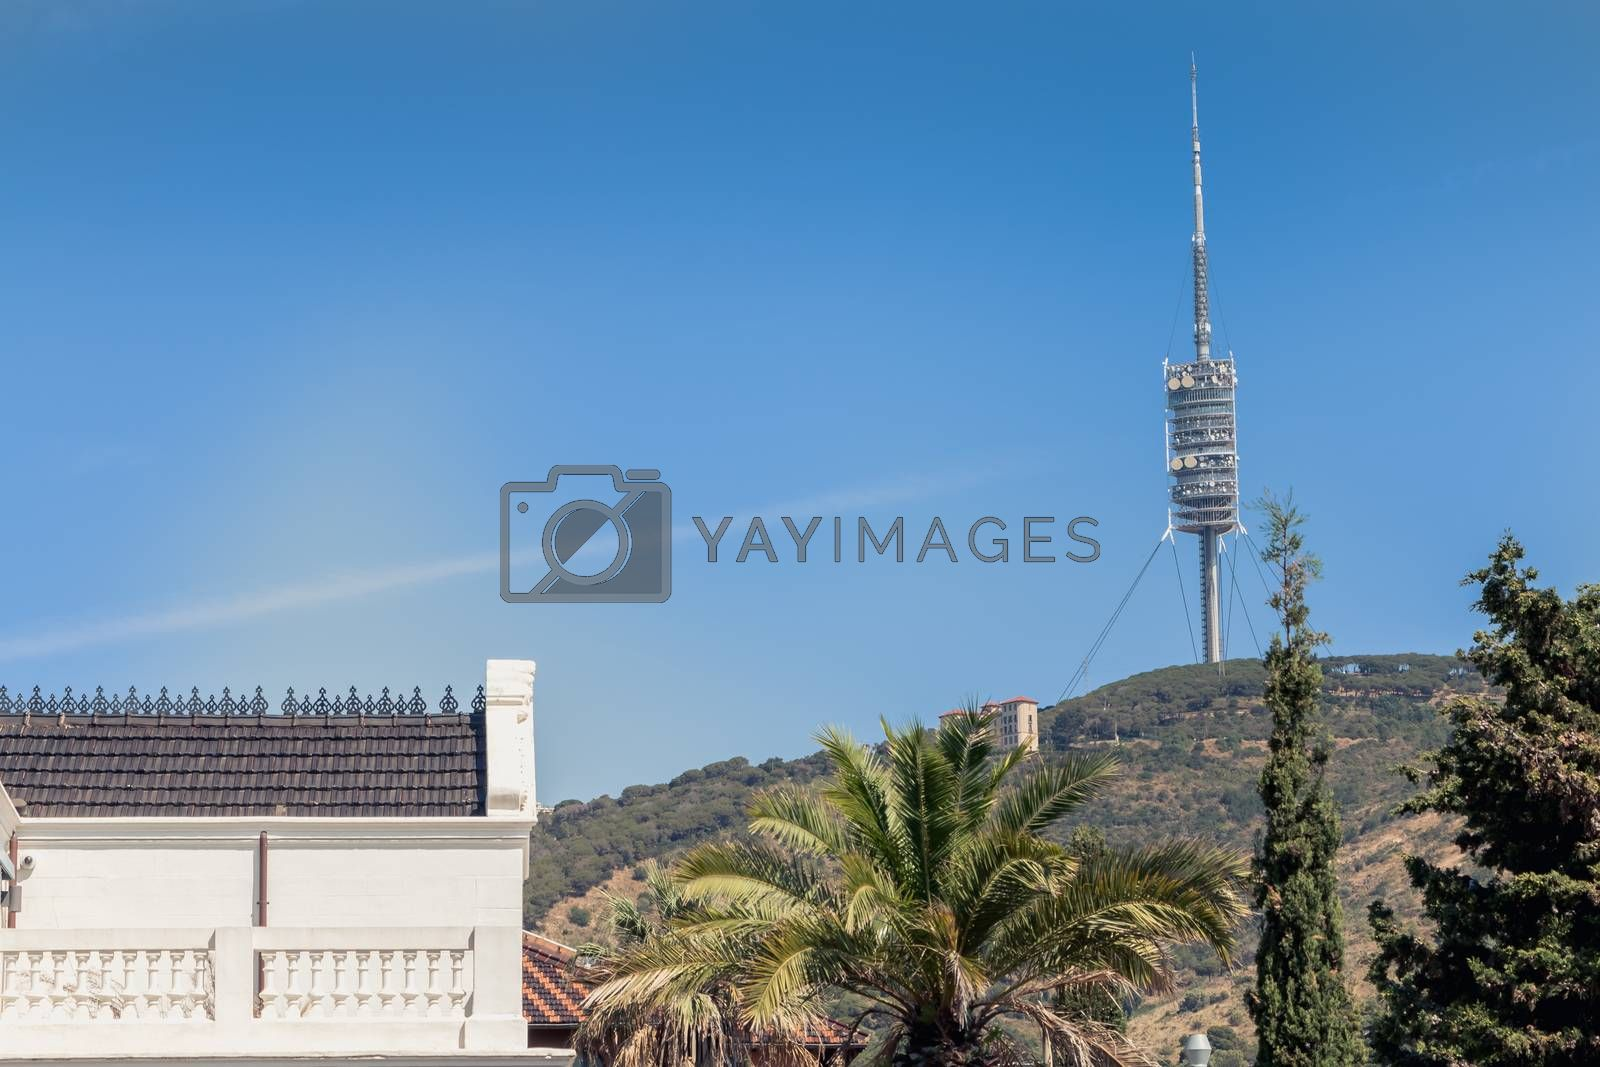 Barcelona, Spain - June 20, 2017: on the heights of Barcelona, the Tower of Collserola (Torre de Collserola), a communication tower of the British architect Norman Foster and inaugurated on June 27, 1992